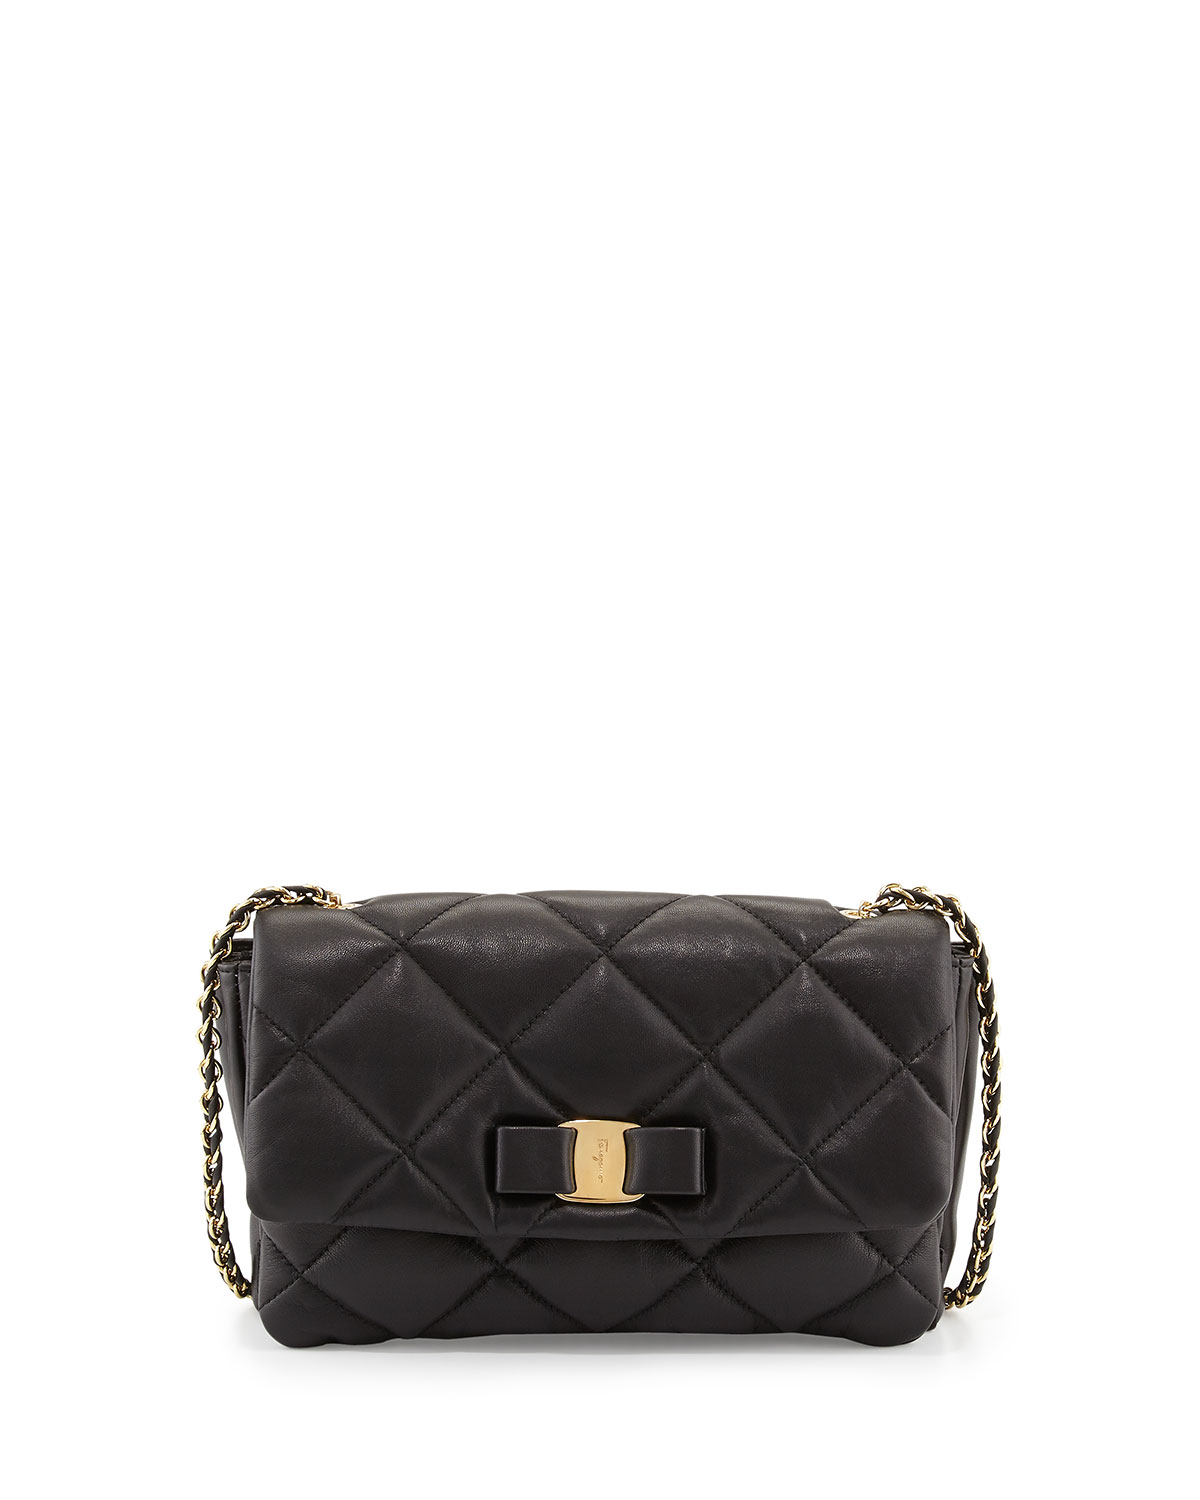 2603cf810e Salvatore Ferragamo Gelly Quilted Leather Shoulder Bag